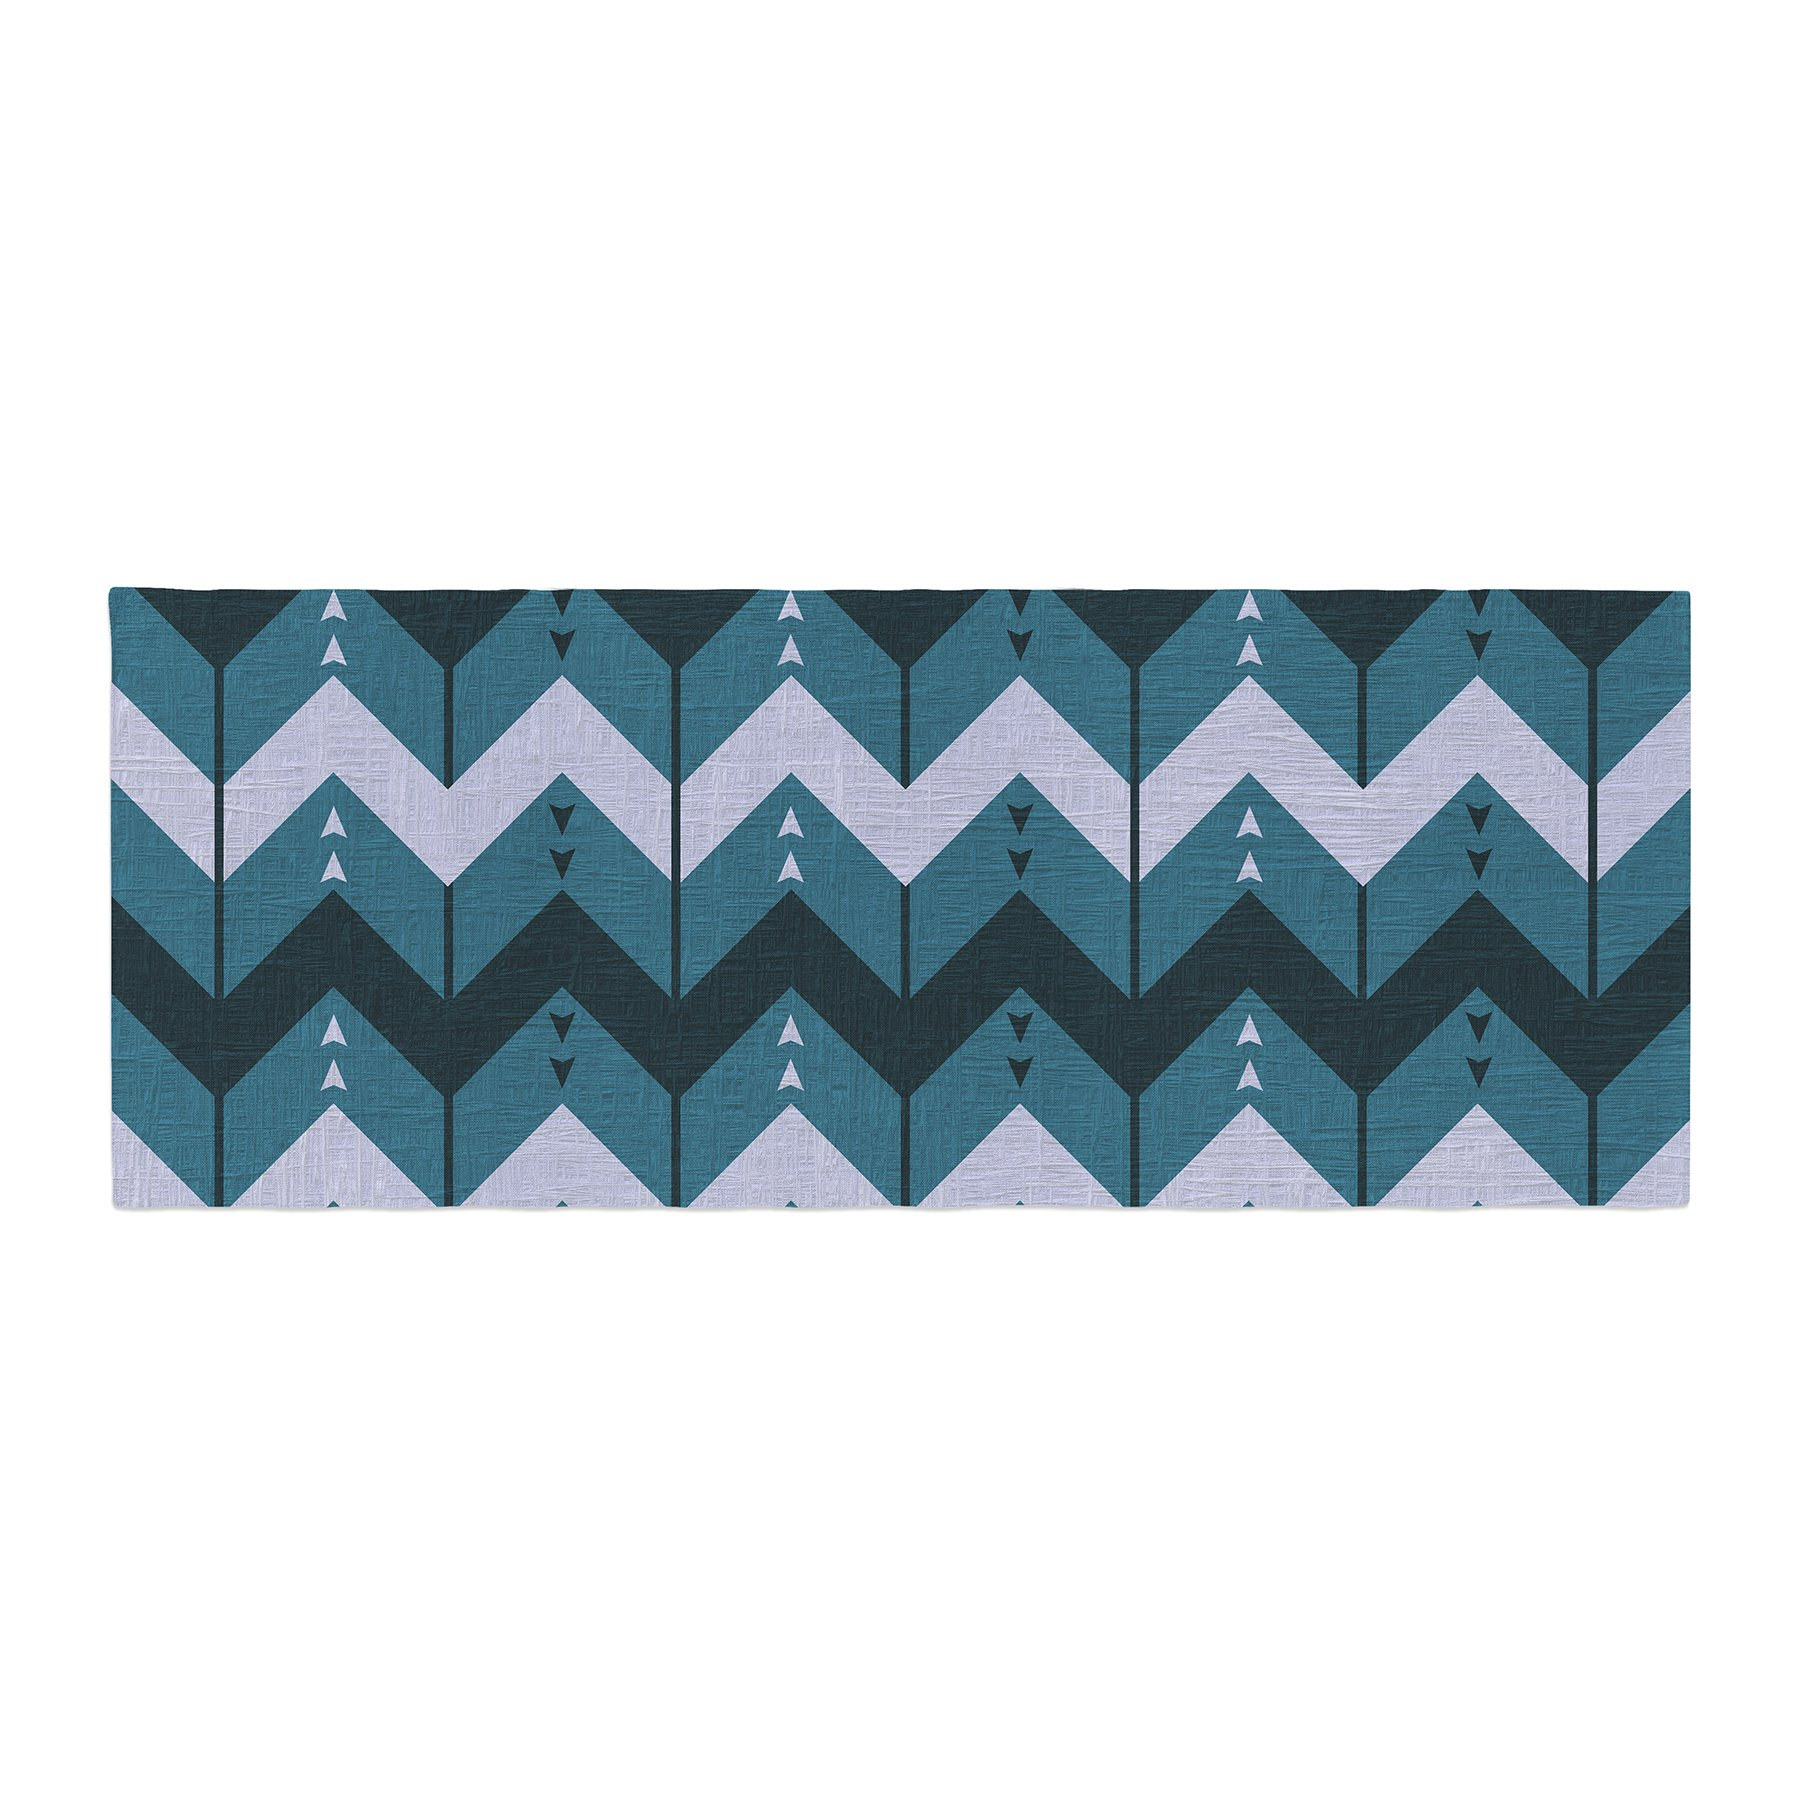 Kess InHouse Nick Atkinson Chevron Dance Blue Bed Runner, 34'' x 86''